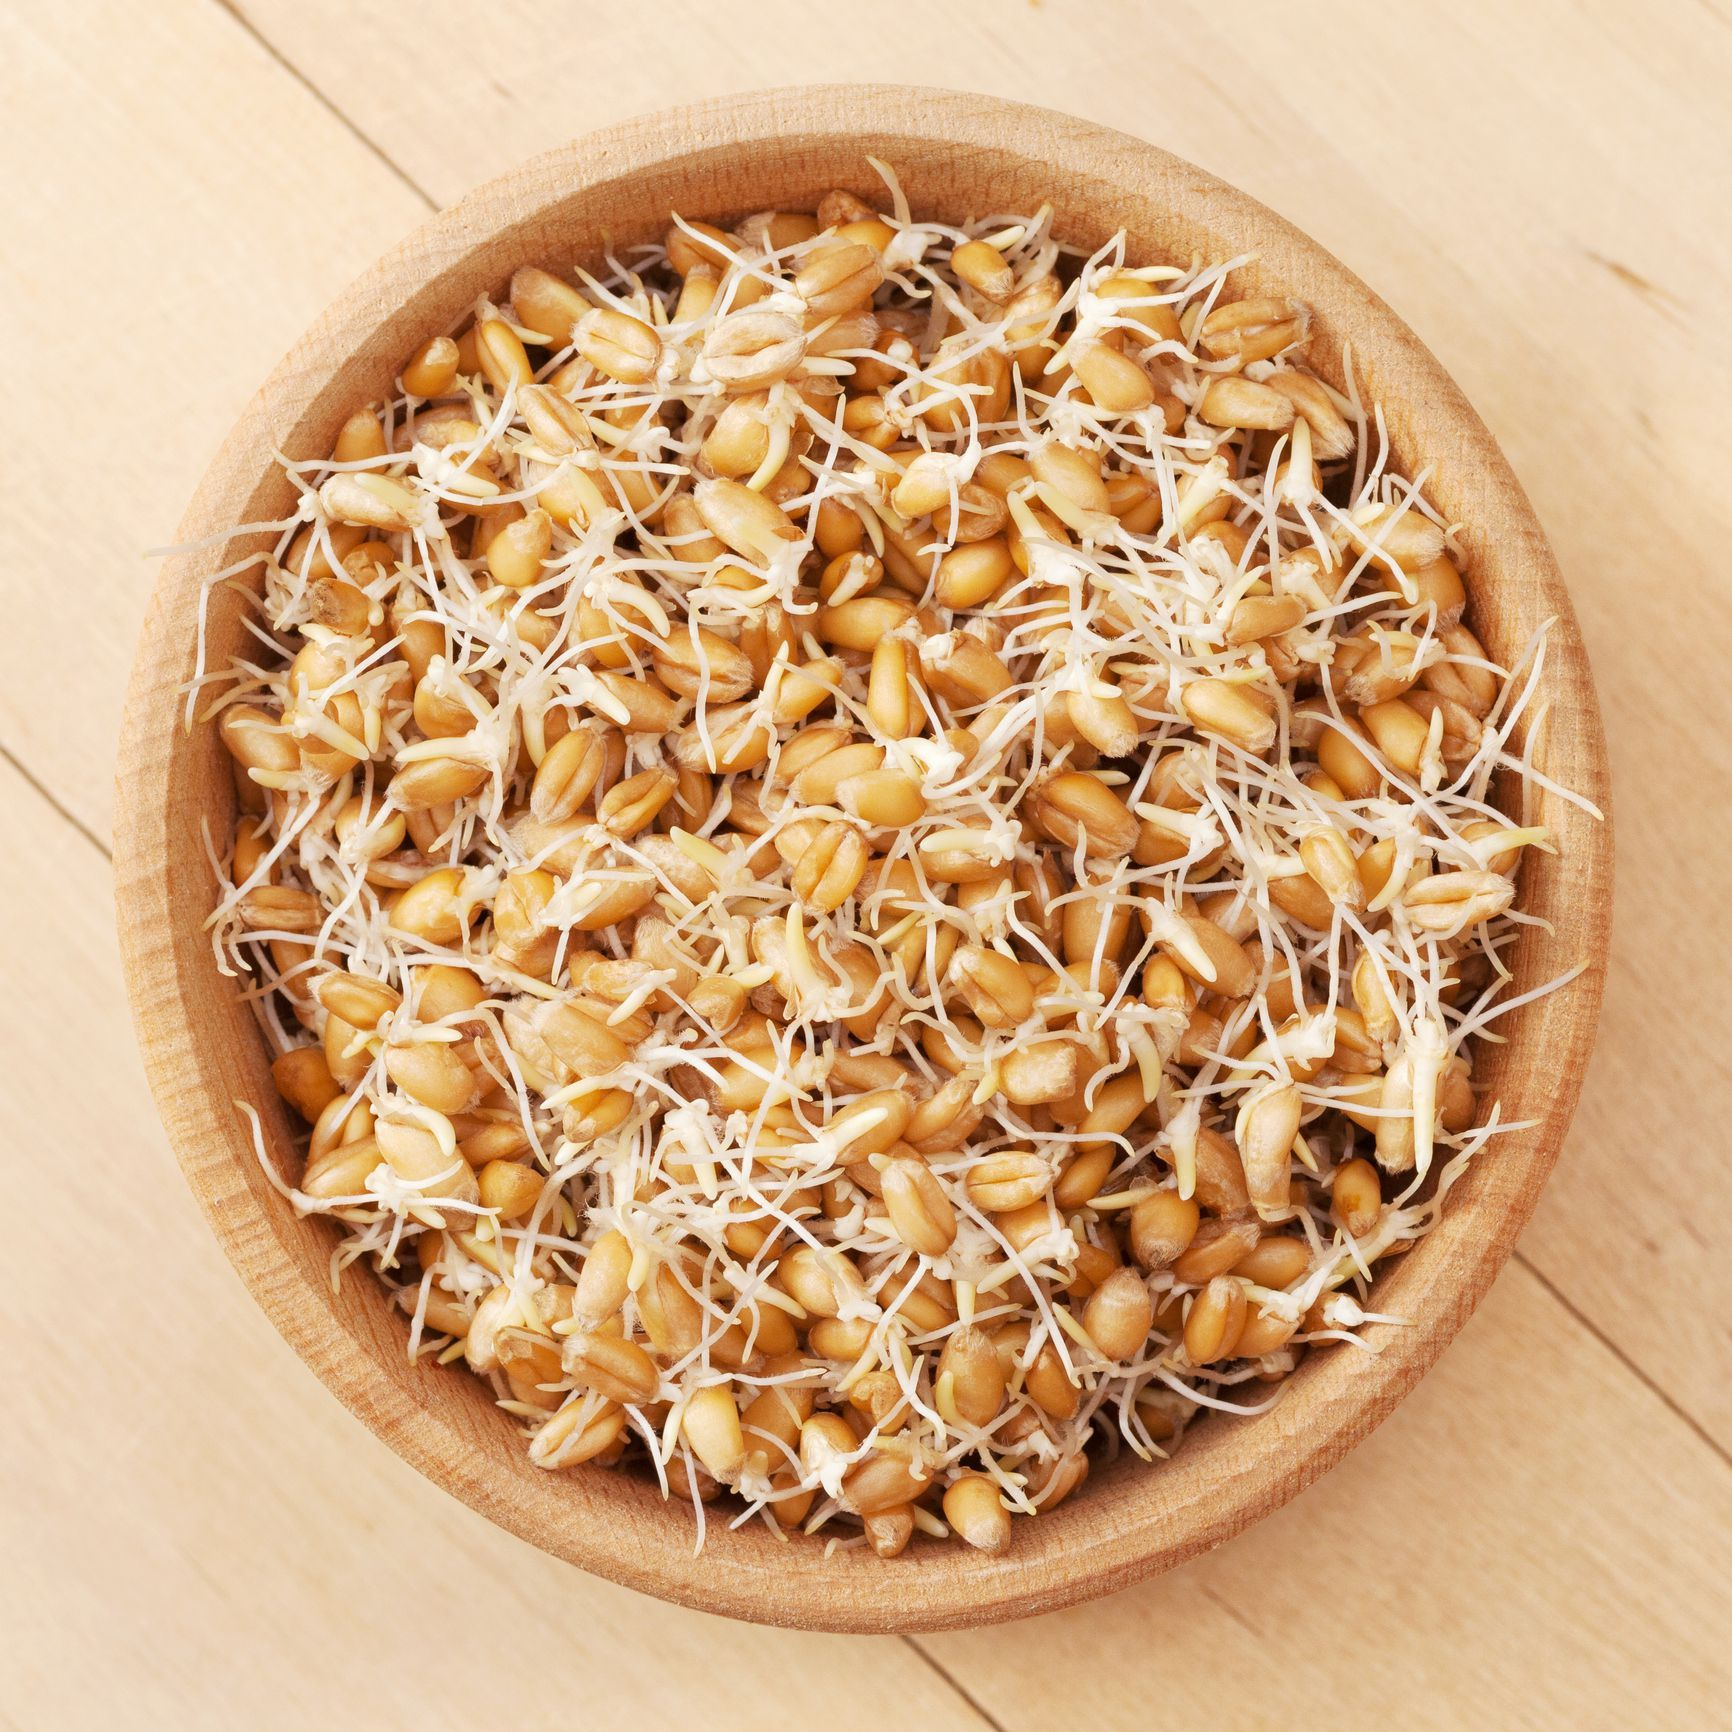 """<p>Sprouted grains are whole grains (brown rice, oats, buckwheat etc.) that have been soaked and left to germinate. The process is said to make it easier for your body to absorb the nutrients it wants and needs, therefore making B vitamins,<a href=""""http://www.prima.co.uk/diet-and-health/healthy-living/advice/a40184/summer-cold/"""" target=""""_blank"""" data-tracking-id=""""recirc-text-link"""">vitamin C</a> and folate more readily available to the body, resulting in more energy.</p>"""